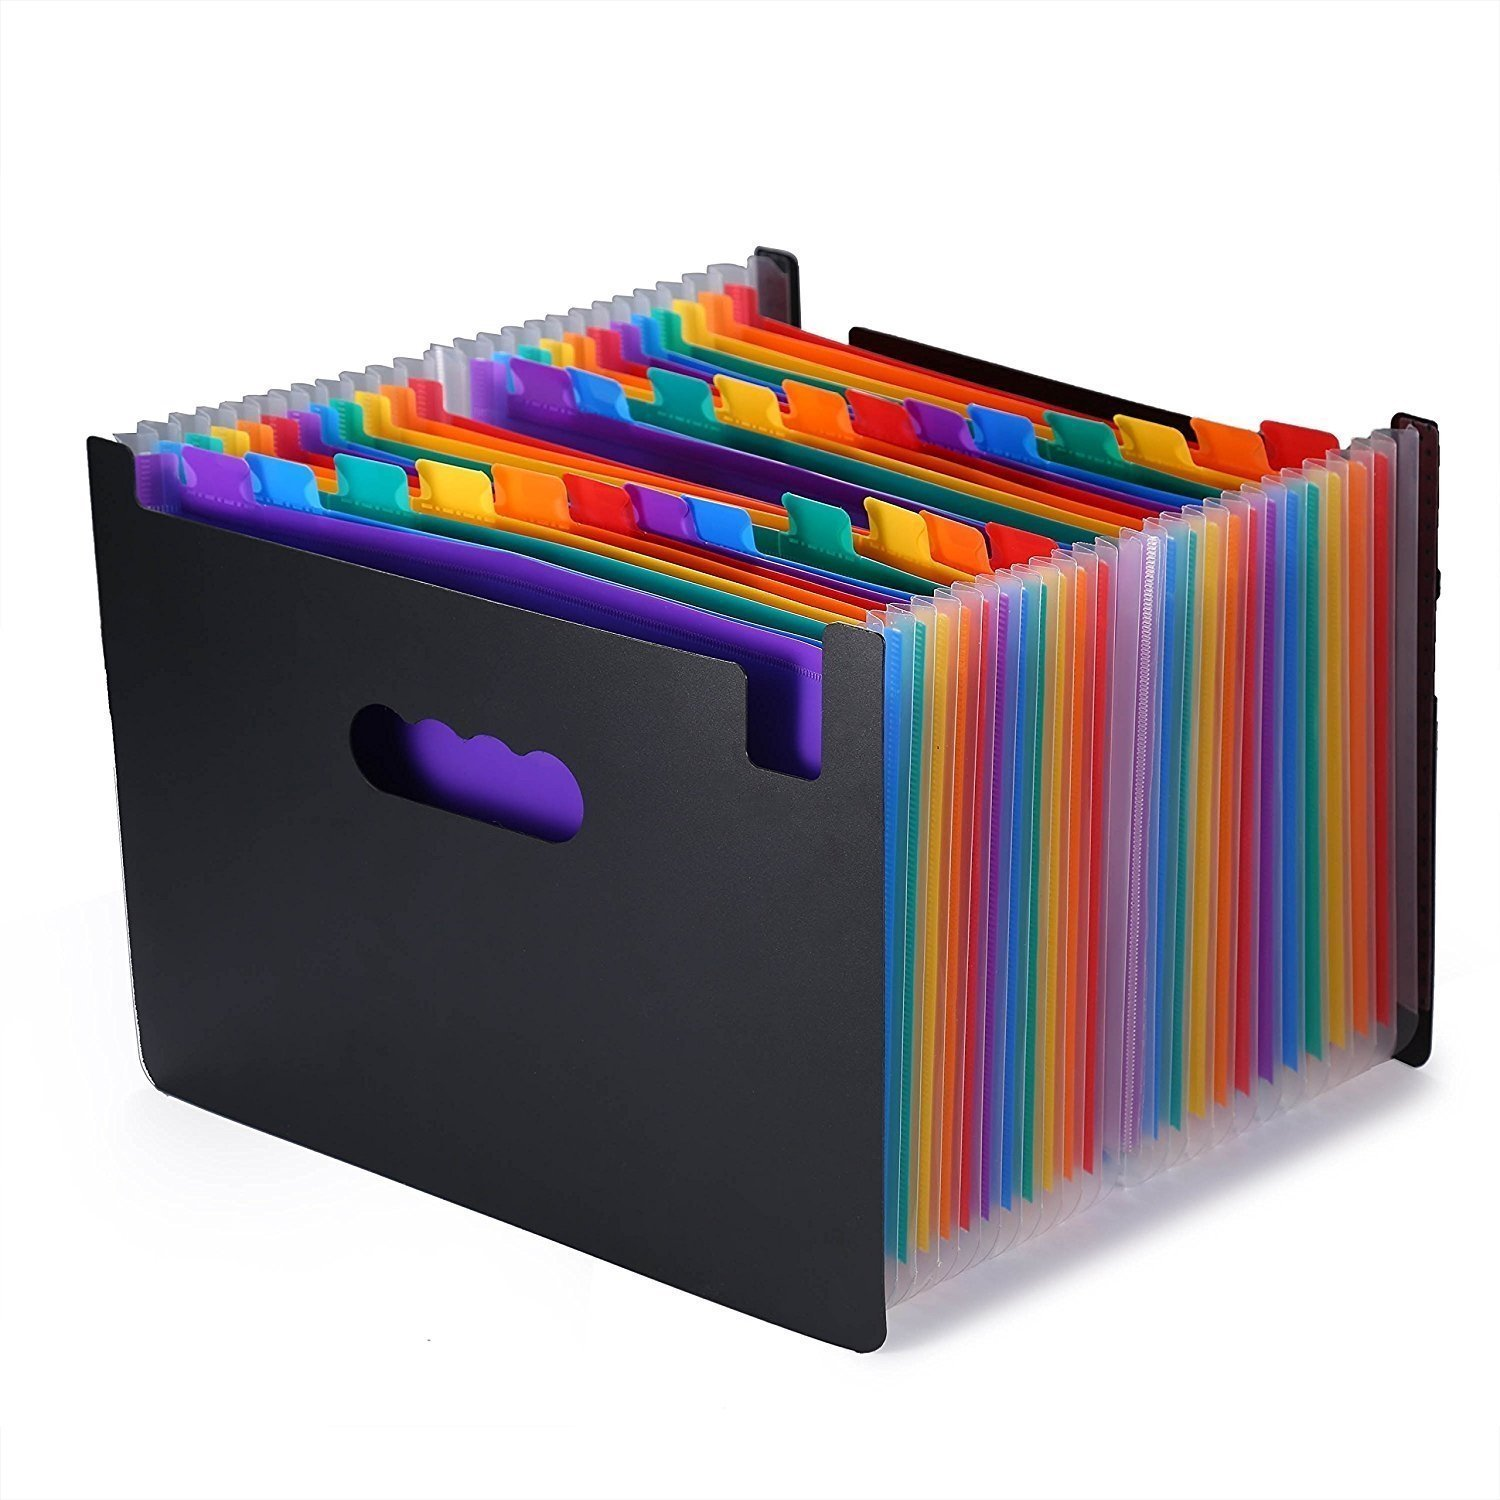 Miss. Sex 24 Pockets Expanding Files Folder Large Plastic Rainbow A4 Expandable File organizer/Portable Accordion File Folder/High Capacity Multicolour Stand/Plastic Business Filing Box